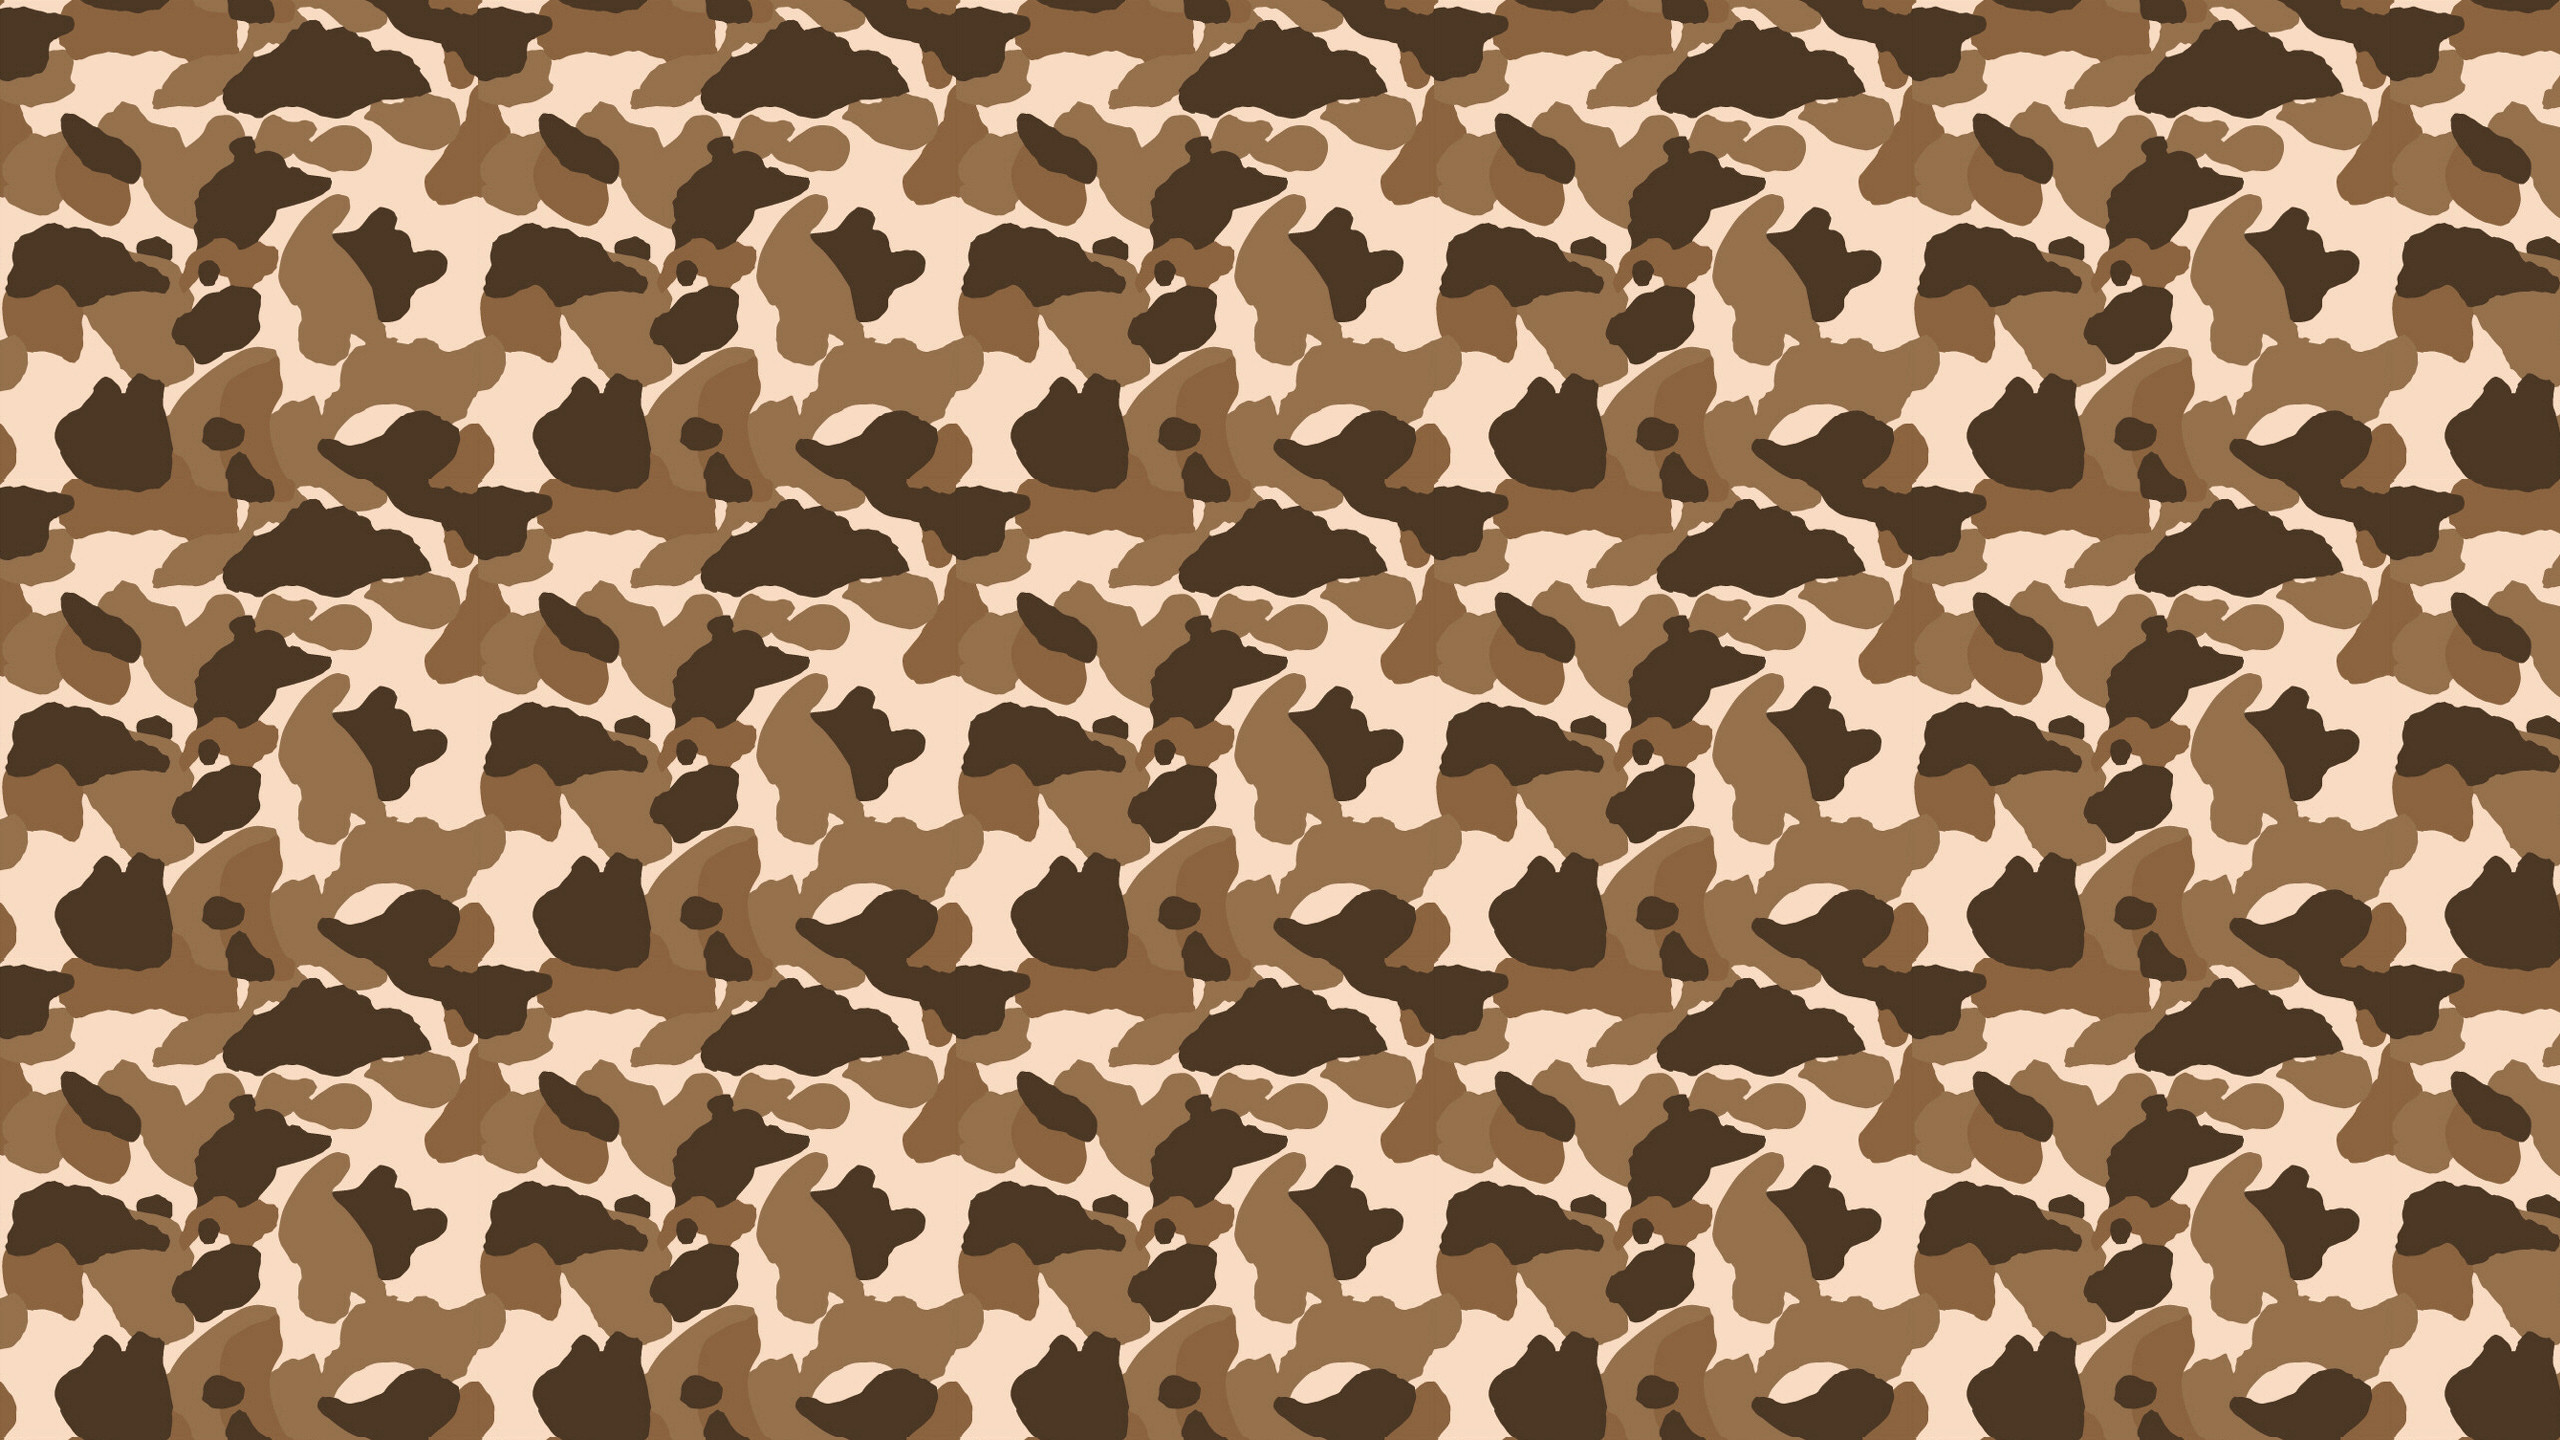 2560x1440 camouflage wallpaper hd brown. Â«Â«